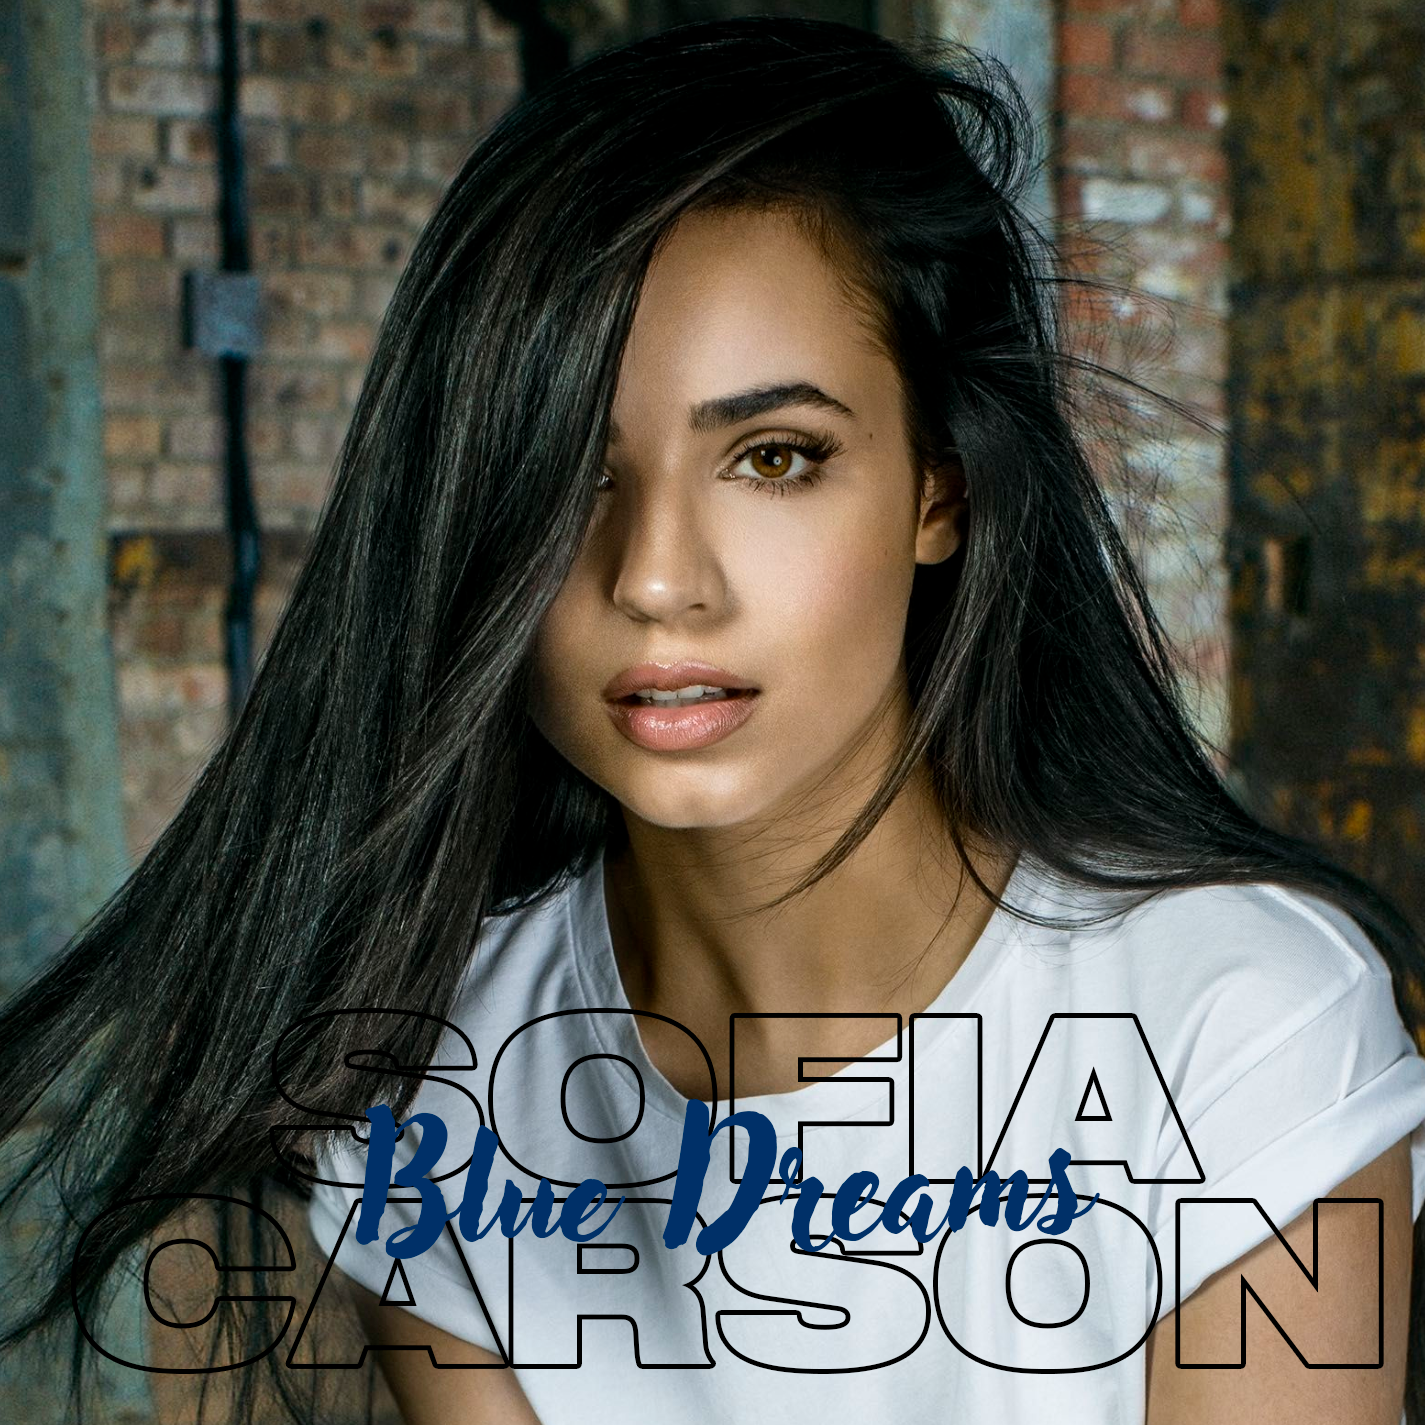 Blue Dreams (Sofia Carson song)